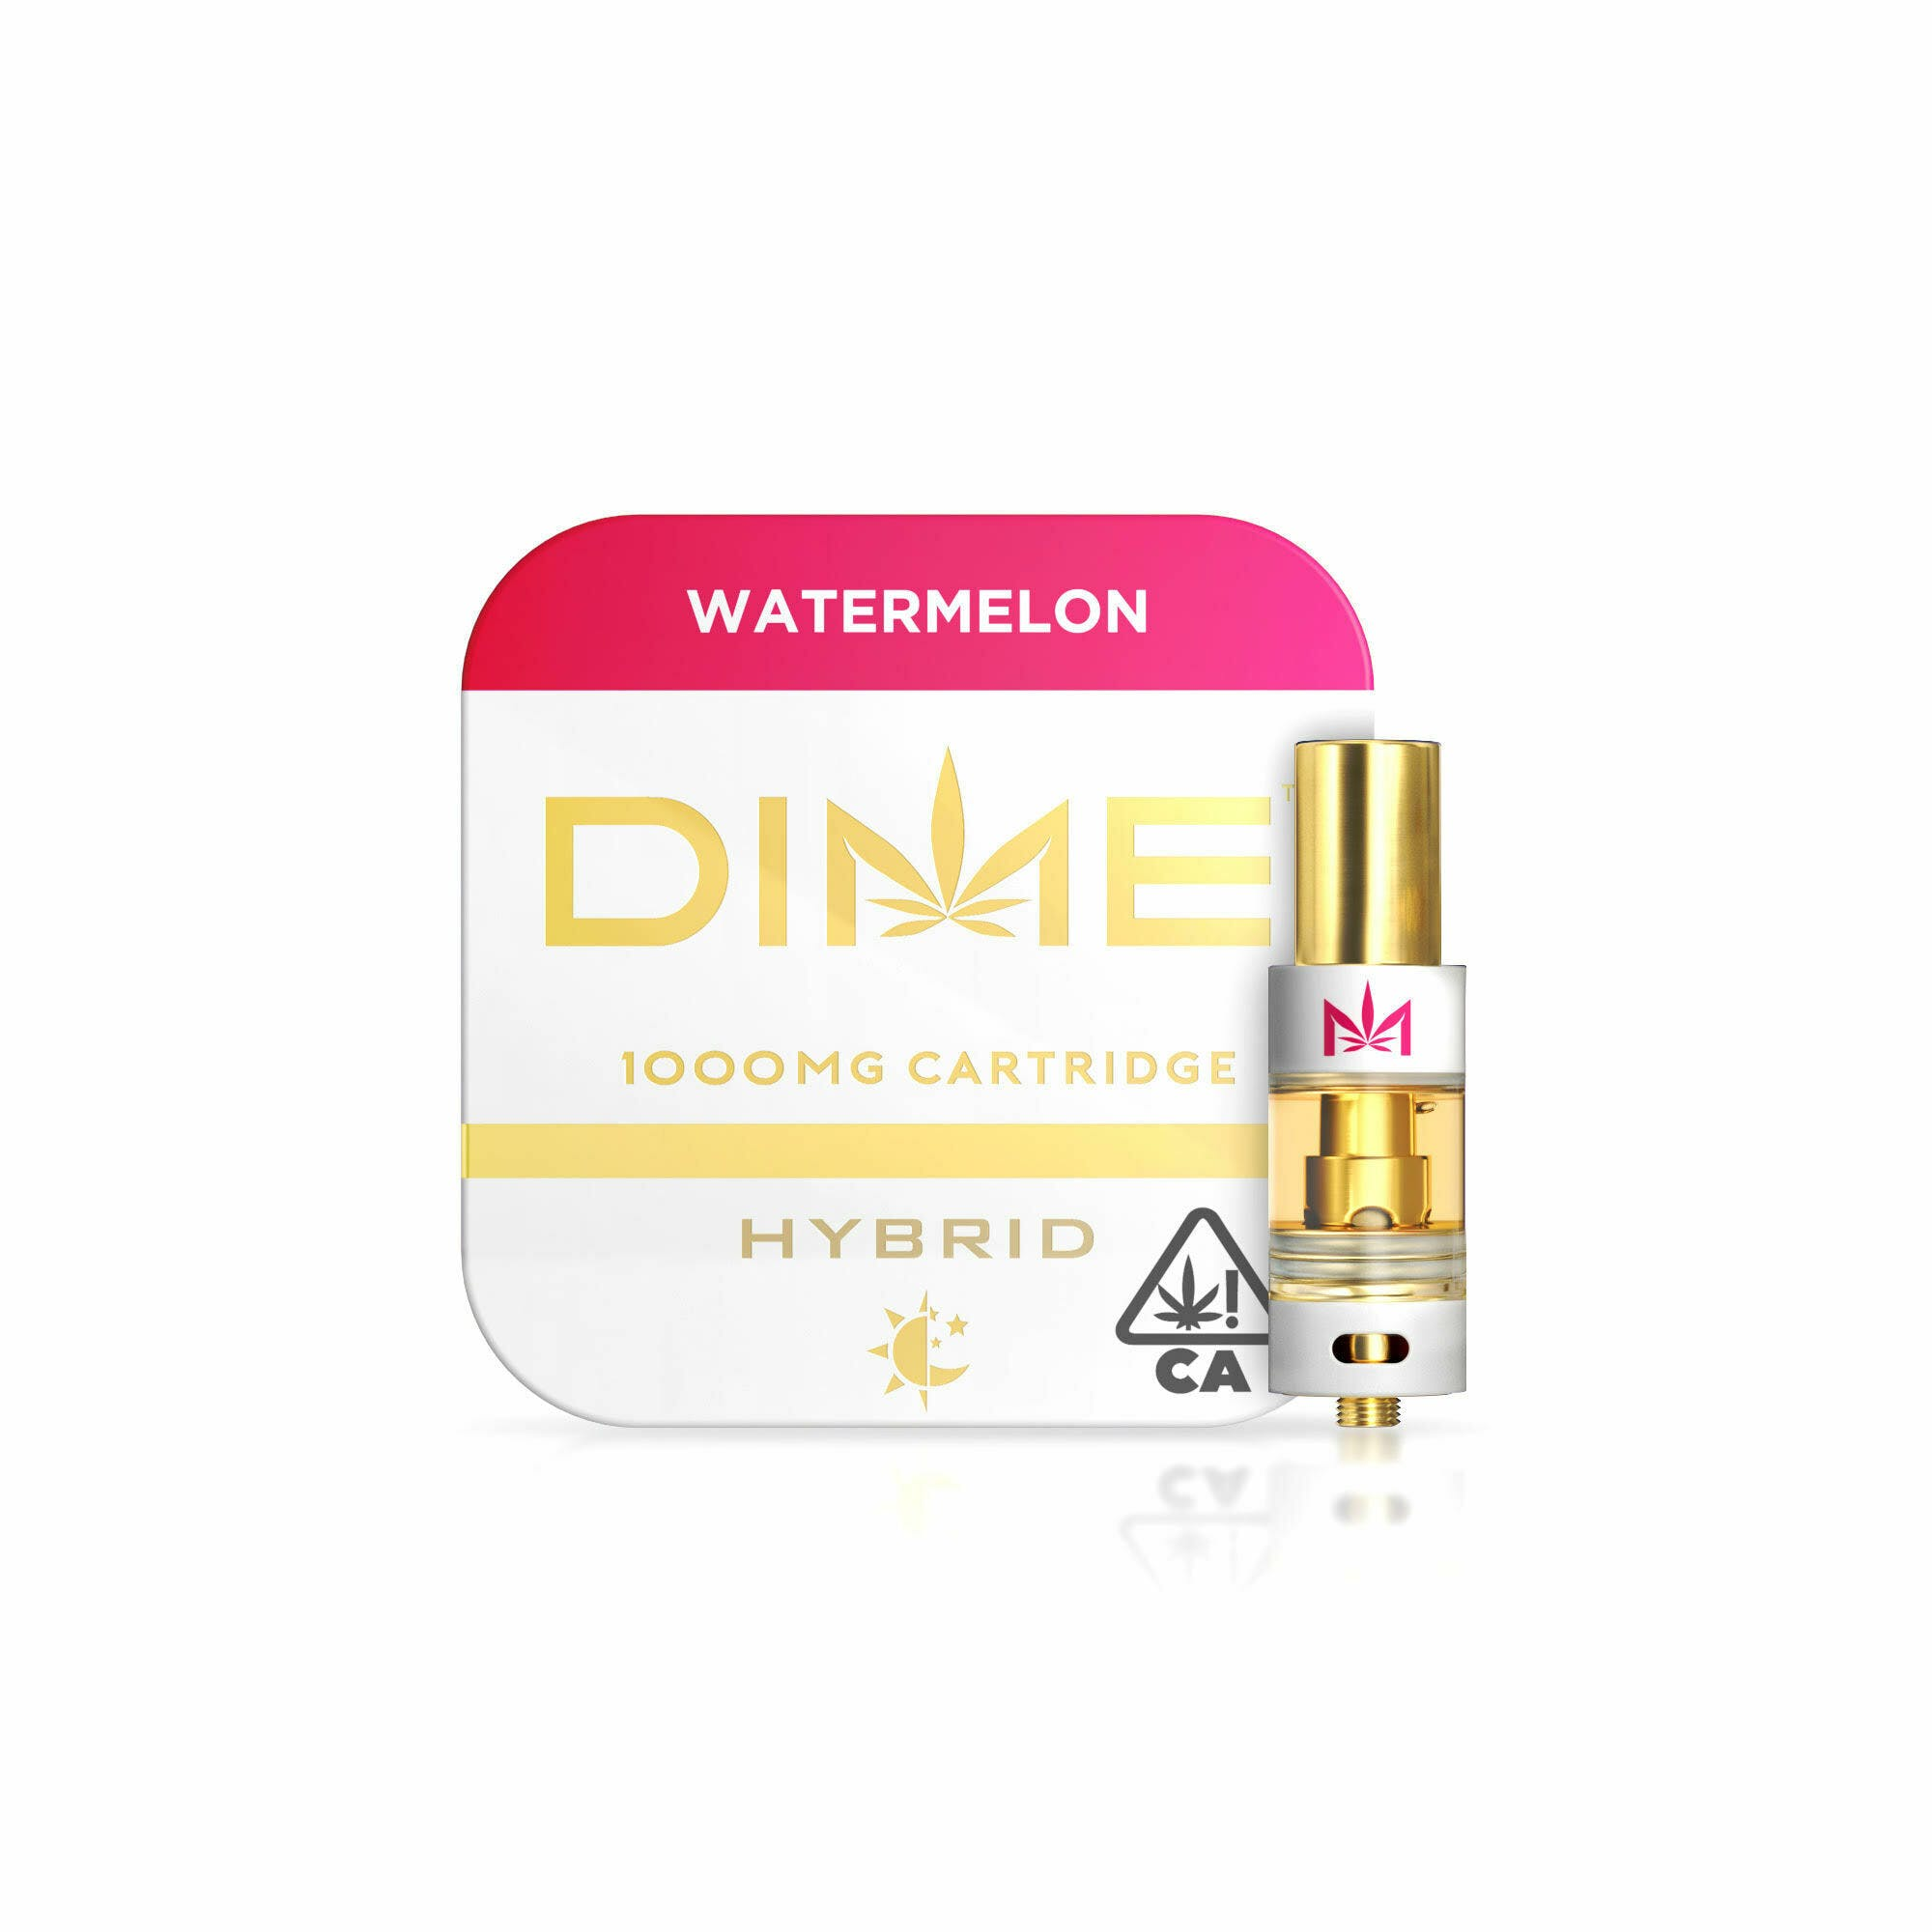 DIME 1000mg Cartridge – Watermelon